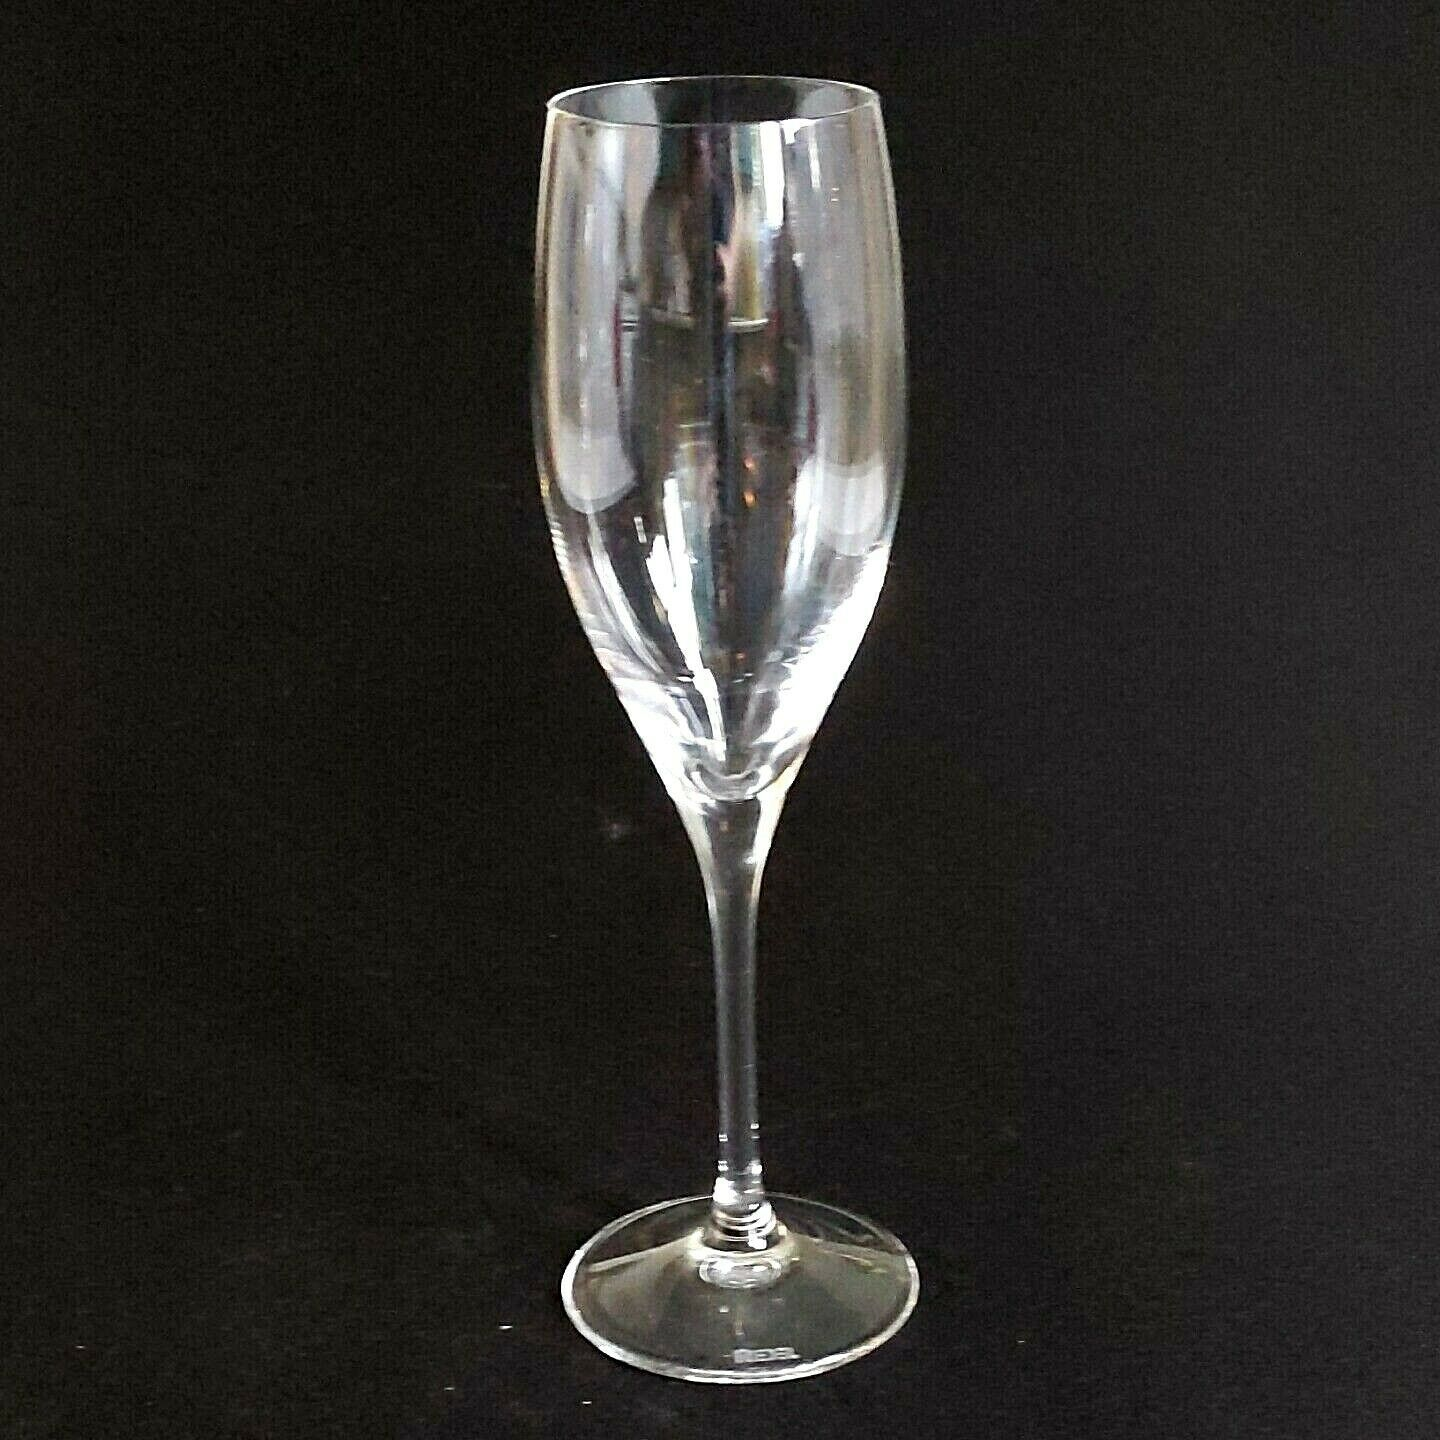 2 (Two) RIEDEL VINUM Lead Free Crystal Fluted Champagne Glass - Signed image 3